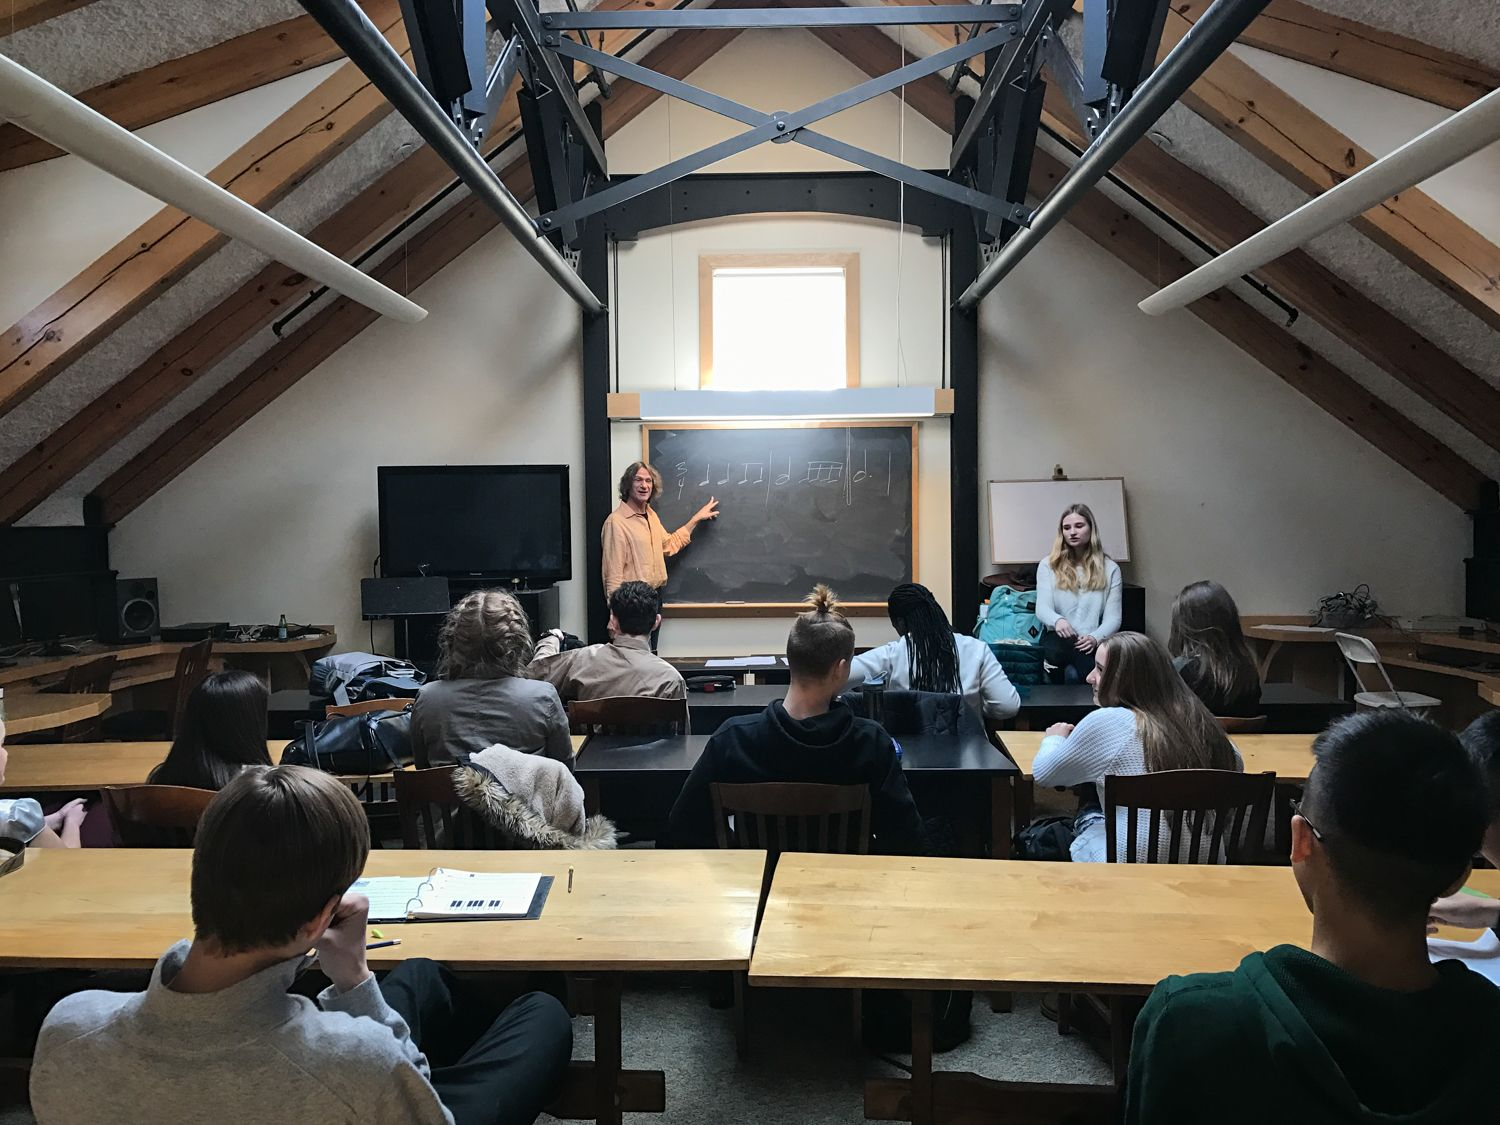 Music teacher Mark Ferguson and Senior Elsa Schloemer teach Music Theory to the freshman class. As part of her senior project, Elsa Schloemer is assisting in teaching the Music Theory class on Mondays, Wednesdays, and Fridays.